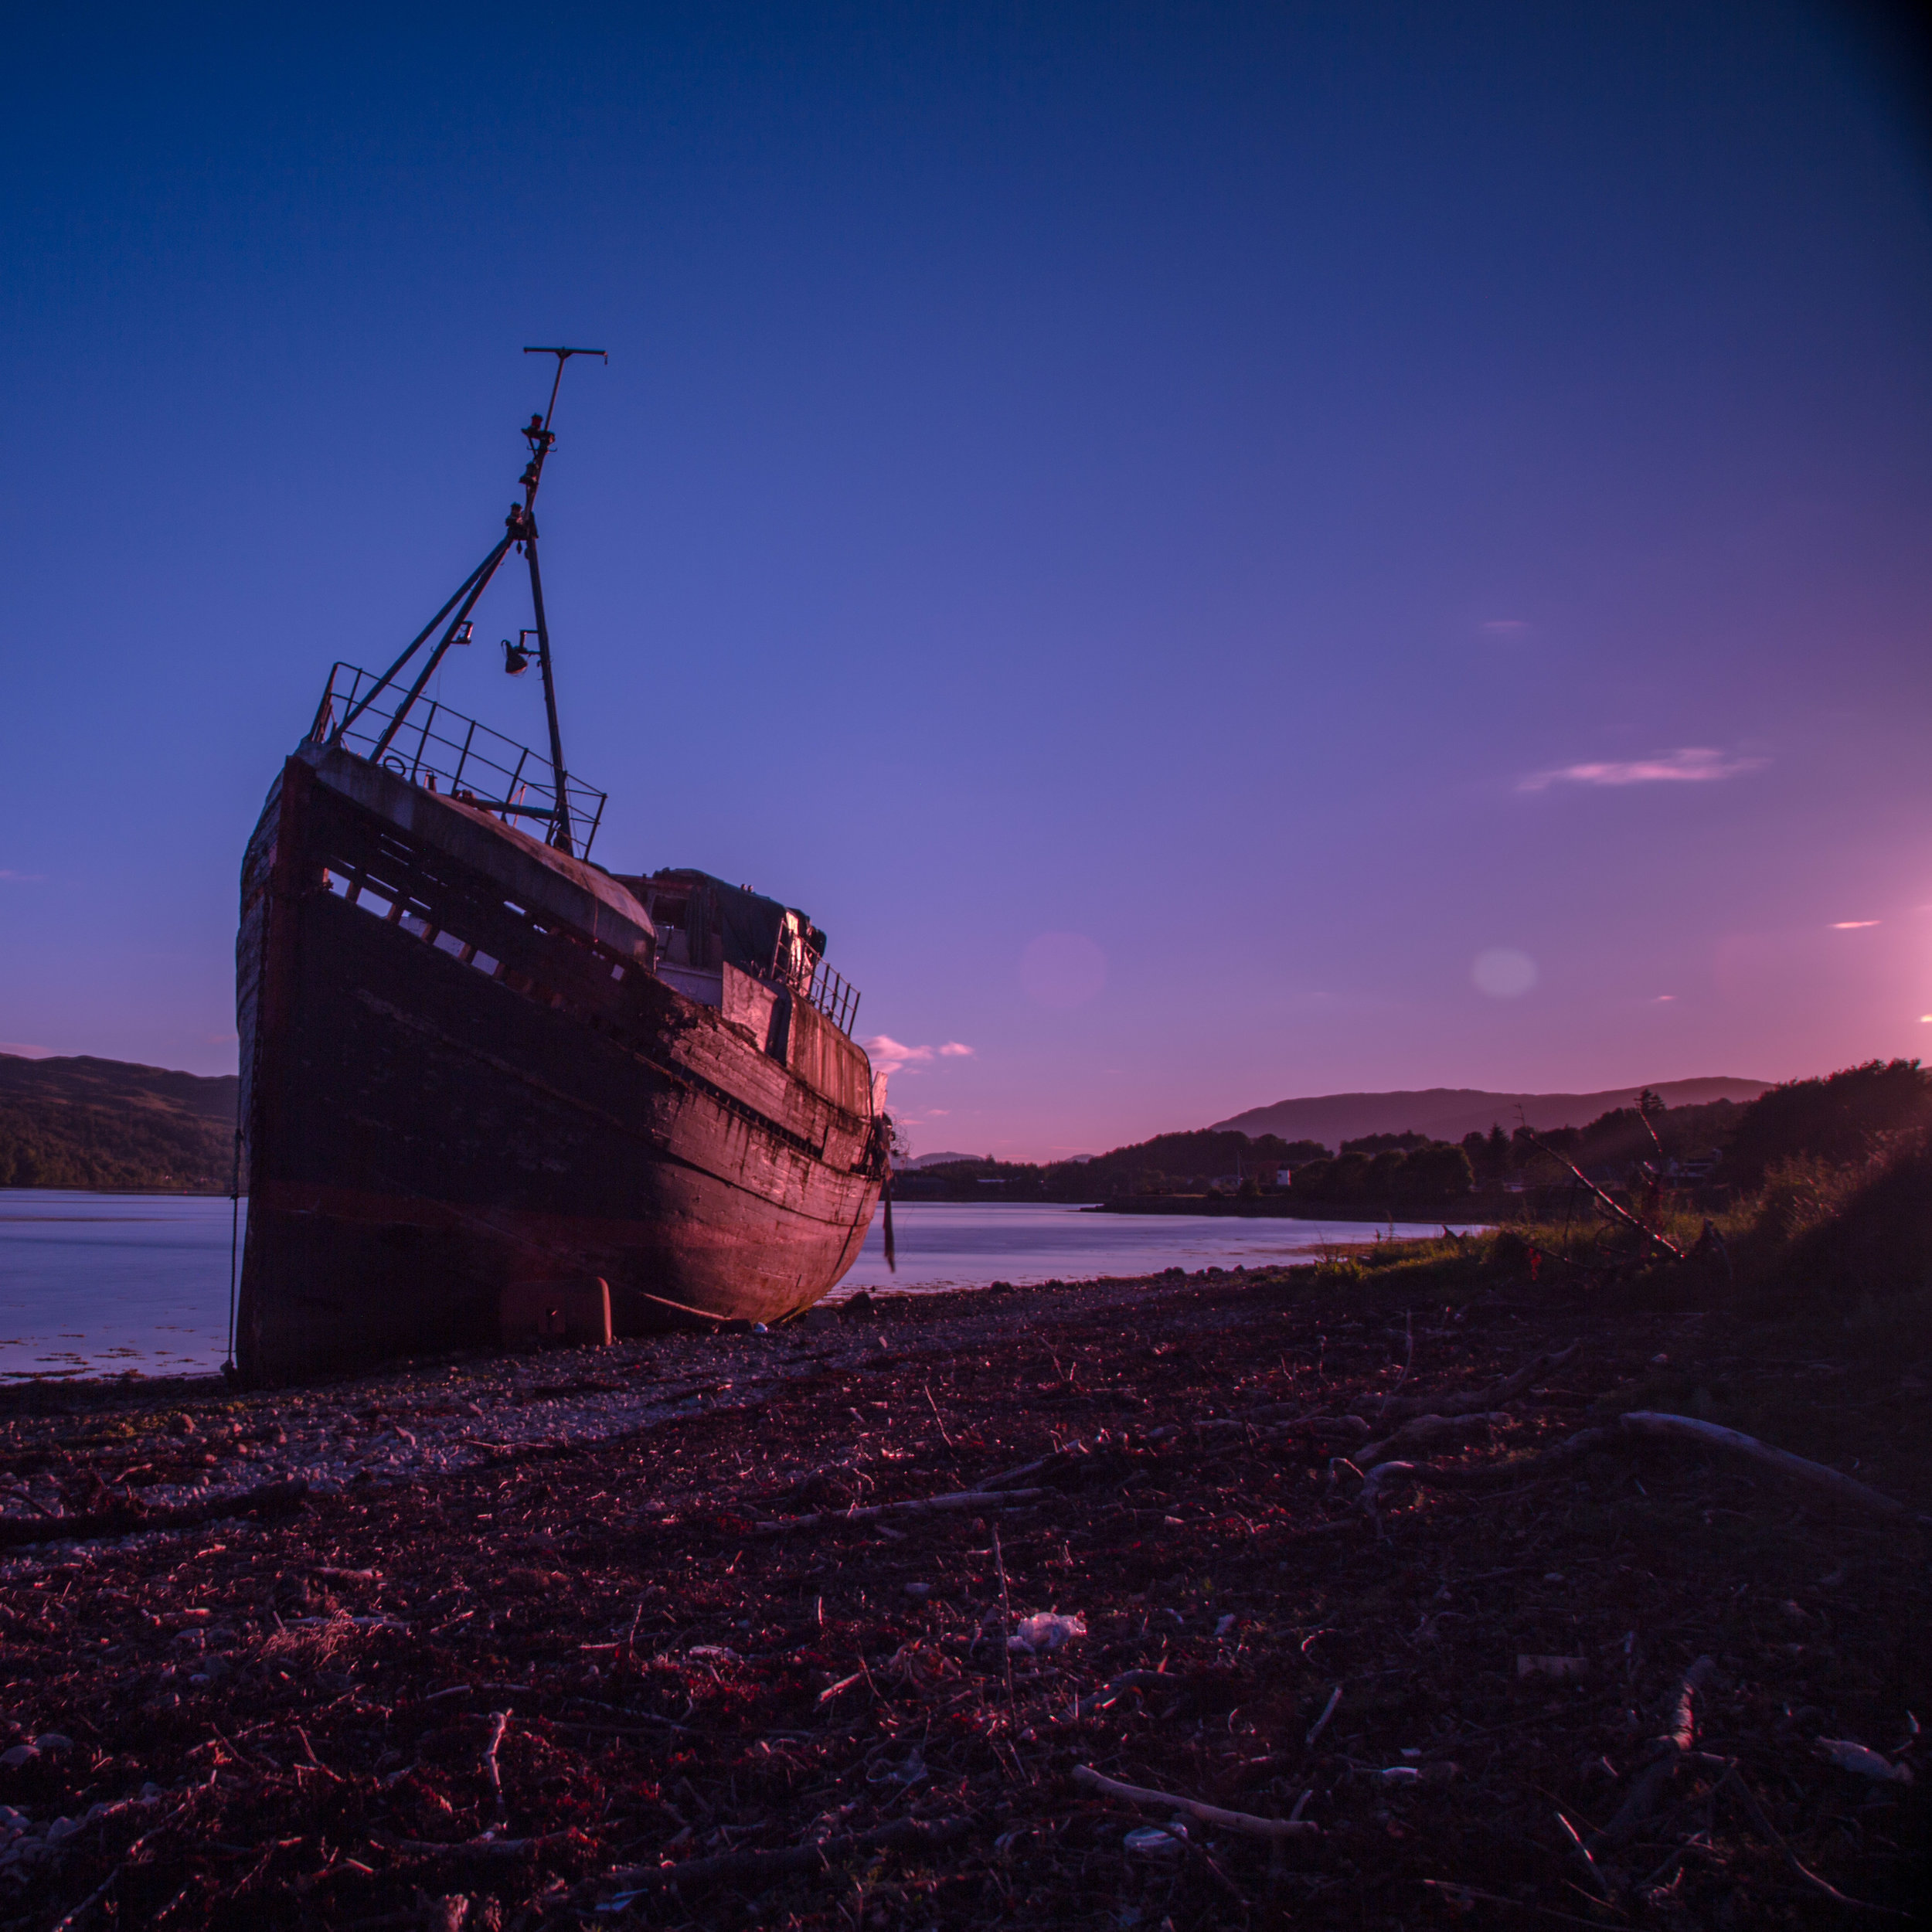 Abandoned Boat, Corpach